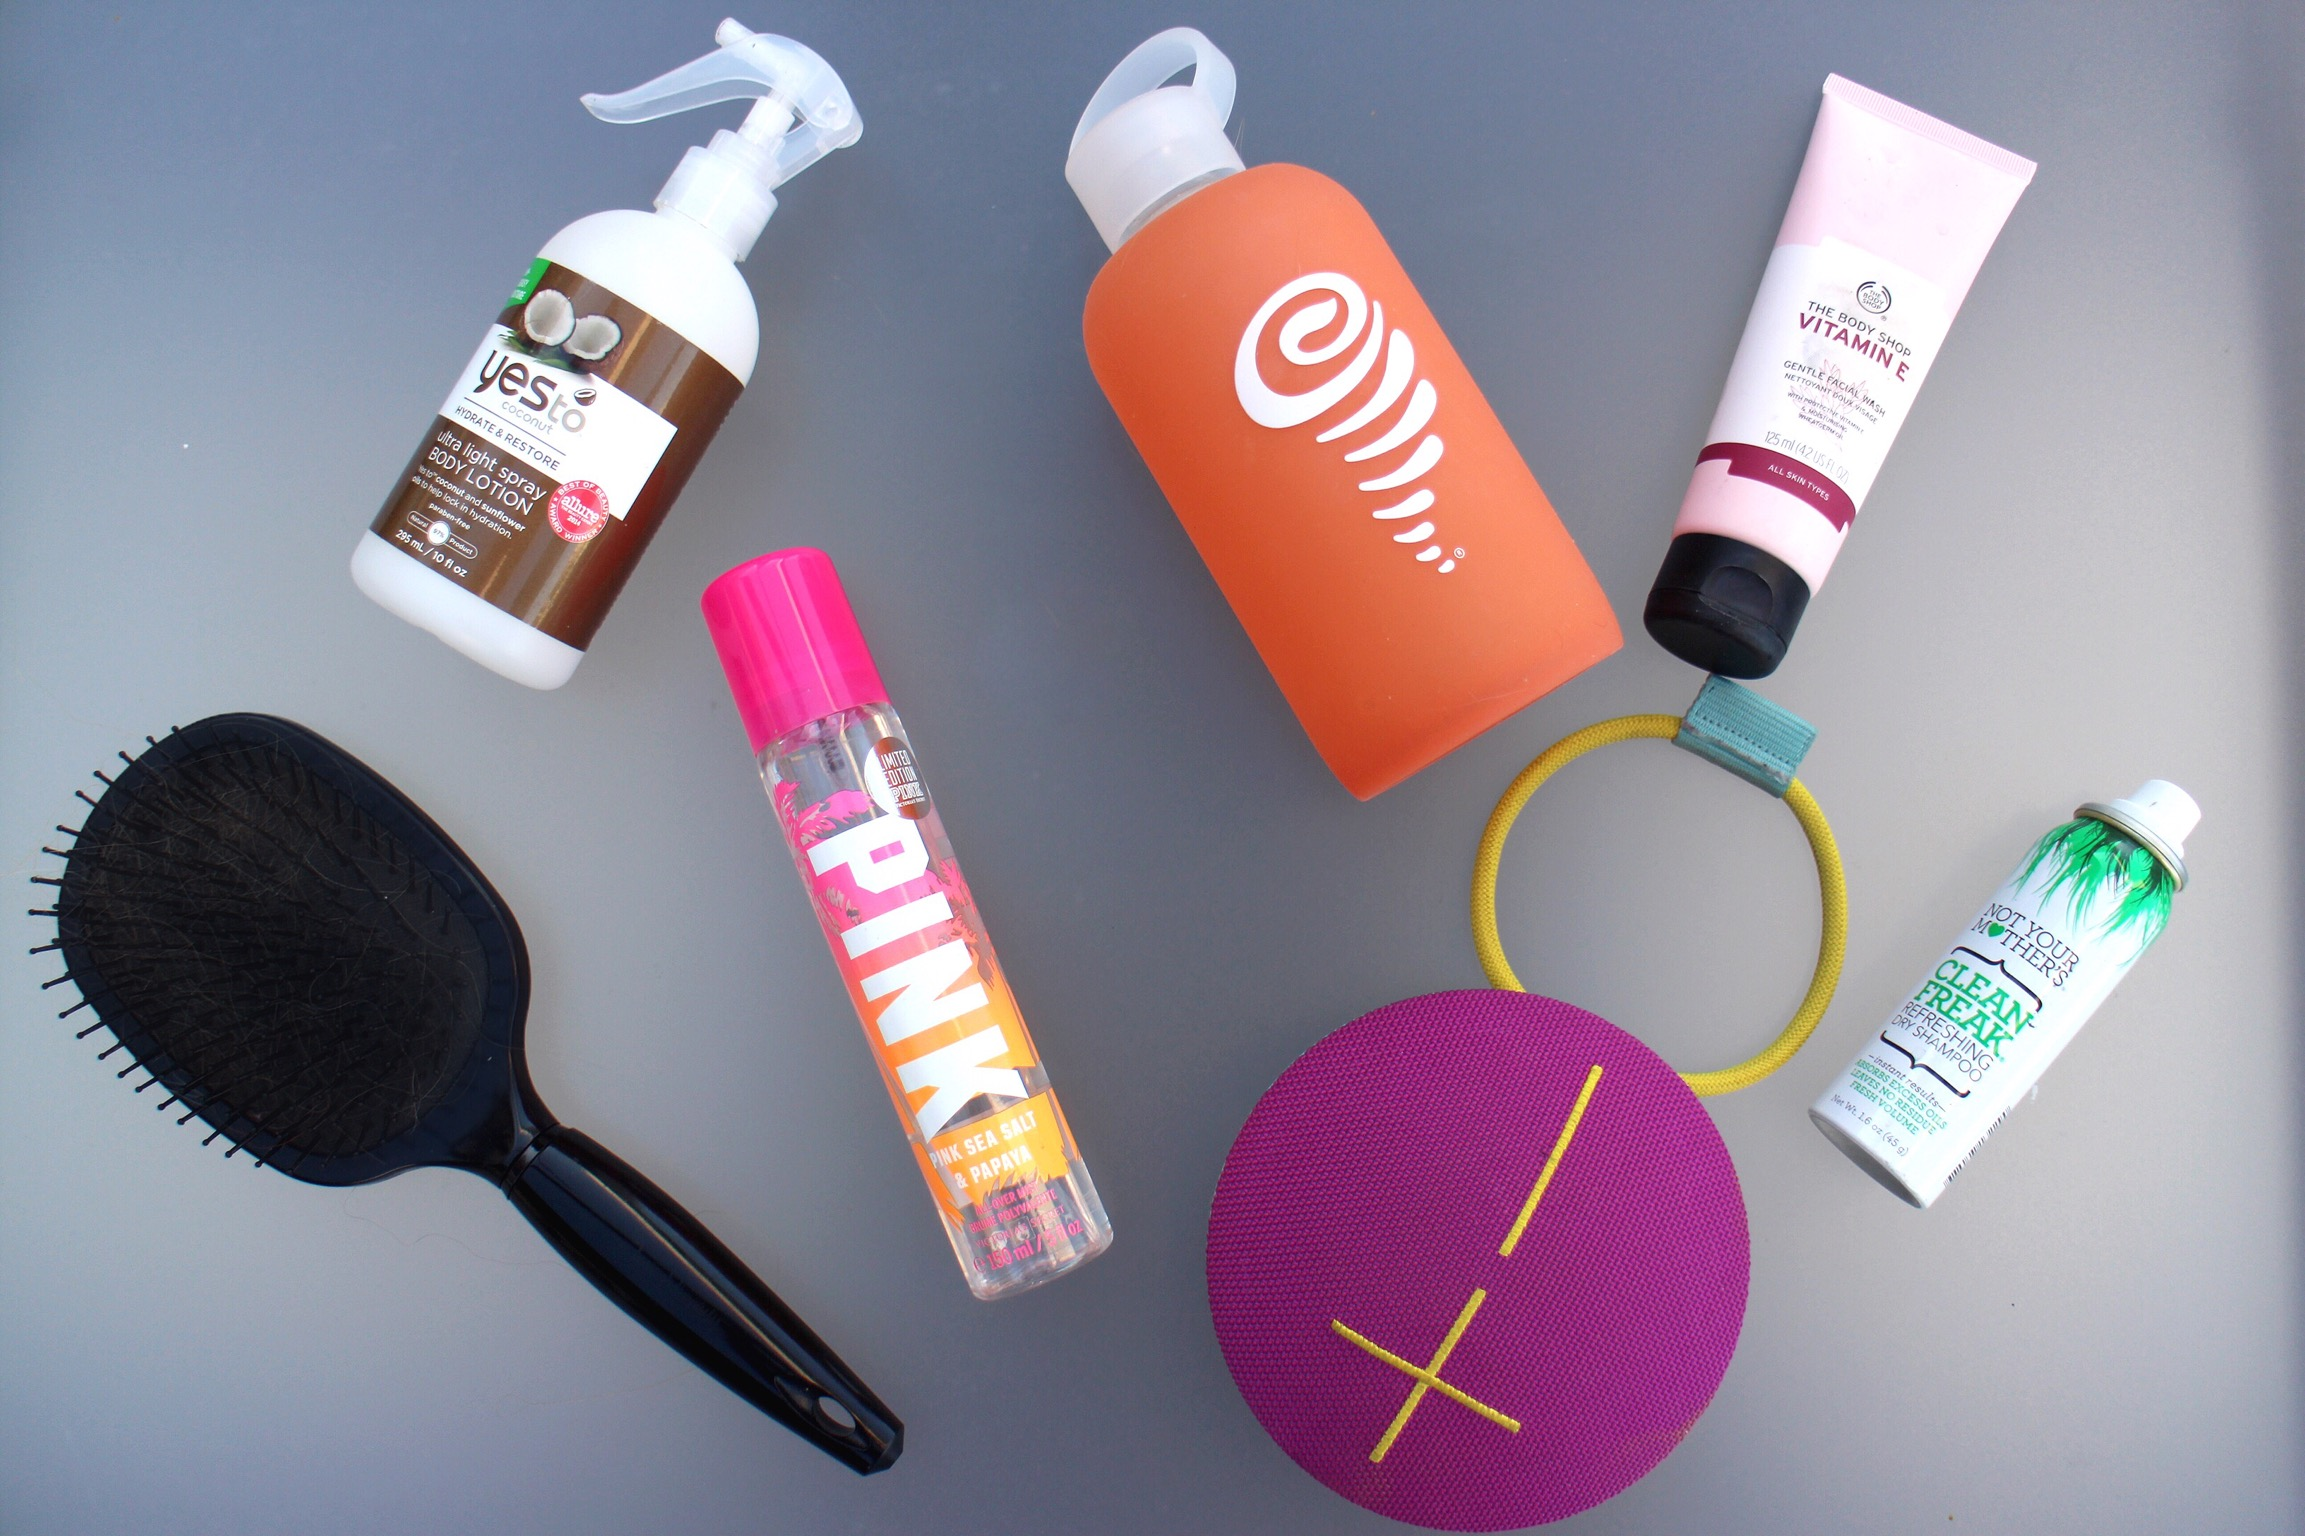 Toiletries - Keeping a small bag with travel size essentials is always key to any gym bag. Cynthia keeps hand sanitizer, hair ties and other feminine products in hers to make sure she always feels fresh and clean